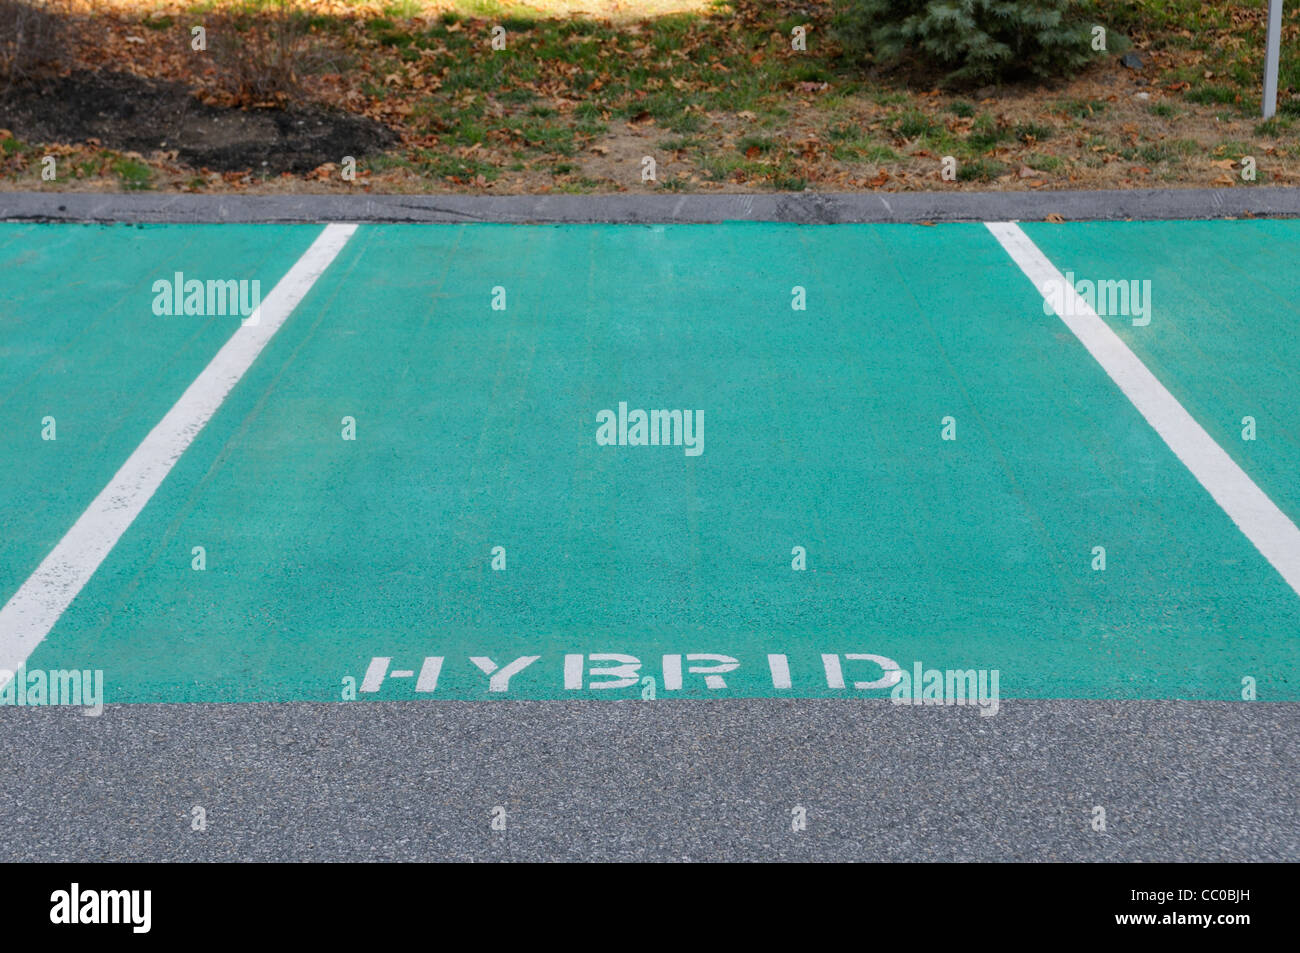 Preferred parking spaces reserved for hybrid gas-electric cars at an eco-friendly hotel in Massachusetts - Stock Image